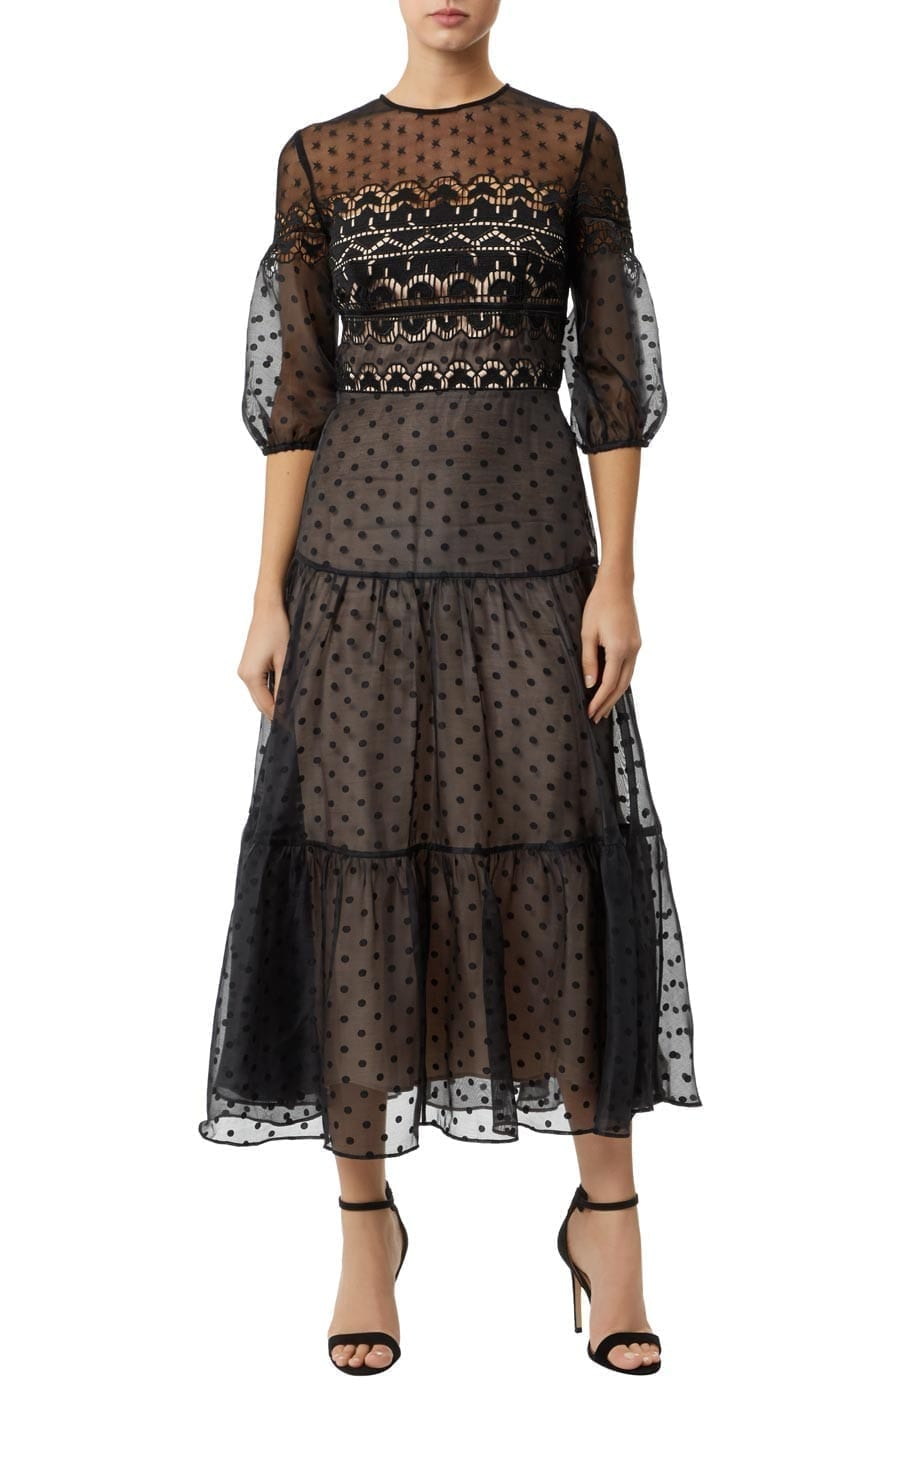 TEMPERLEY LONDON Prix Black Dress